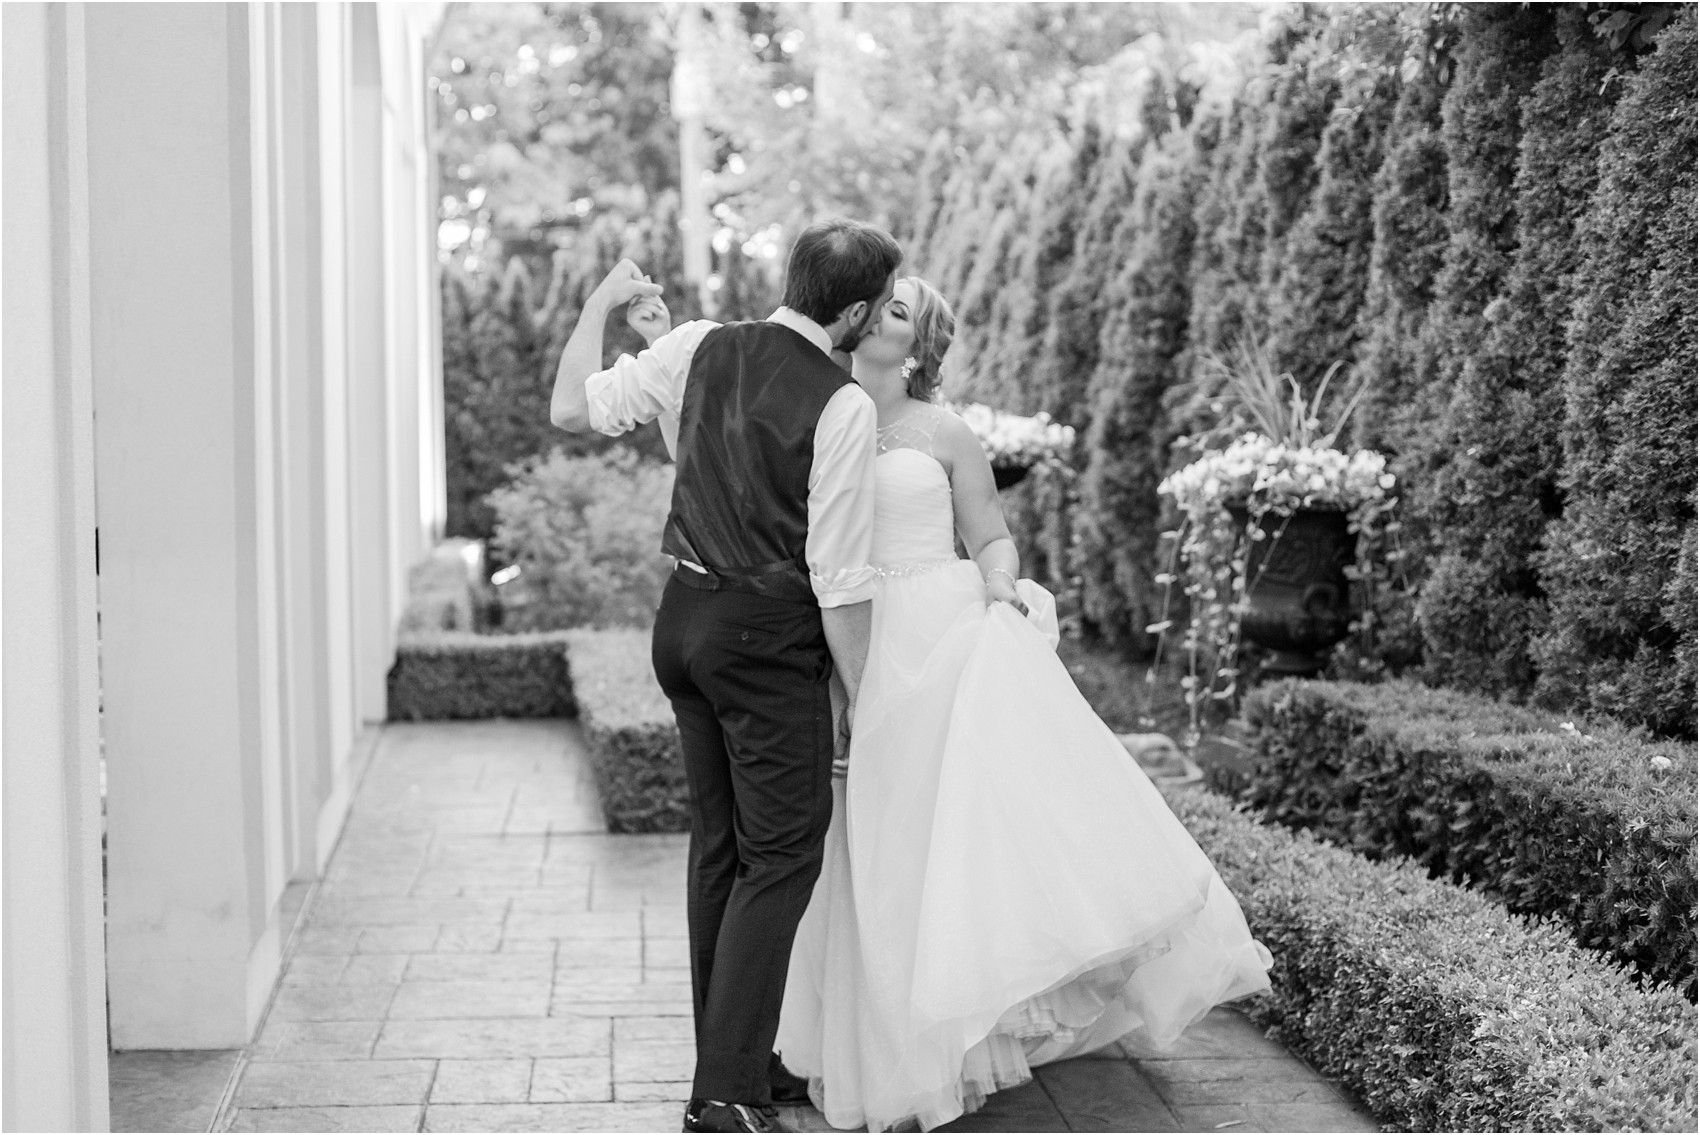 lord-of-the-rings-inspired-wedding-photos-at-crystal-gardens-in-howell-mi-by-courtney-carolyn-photography_0121.jpg